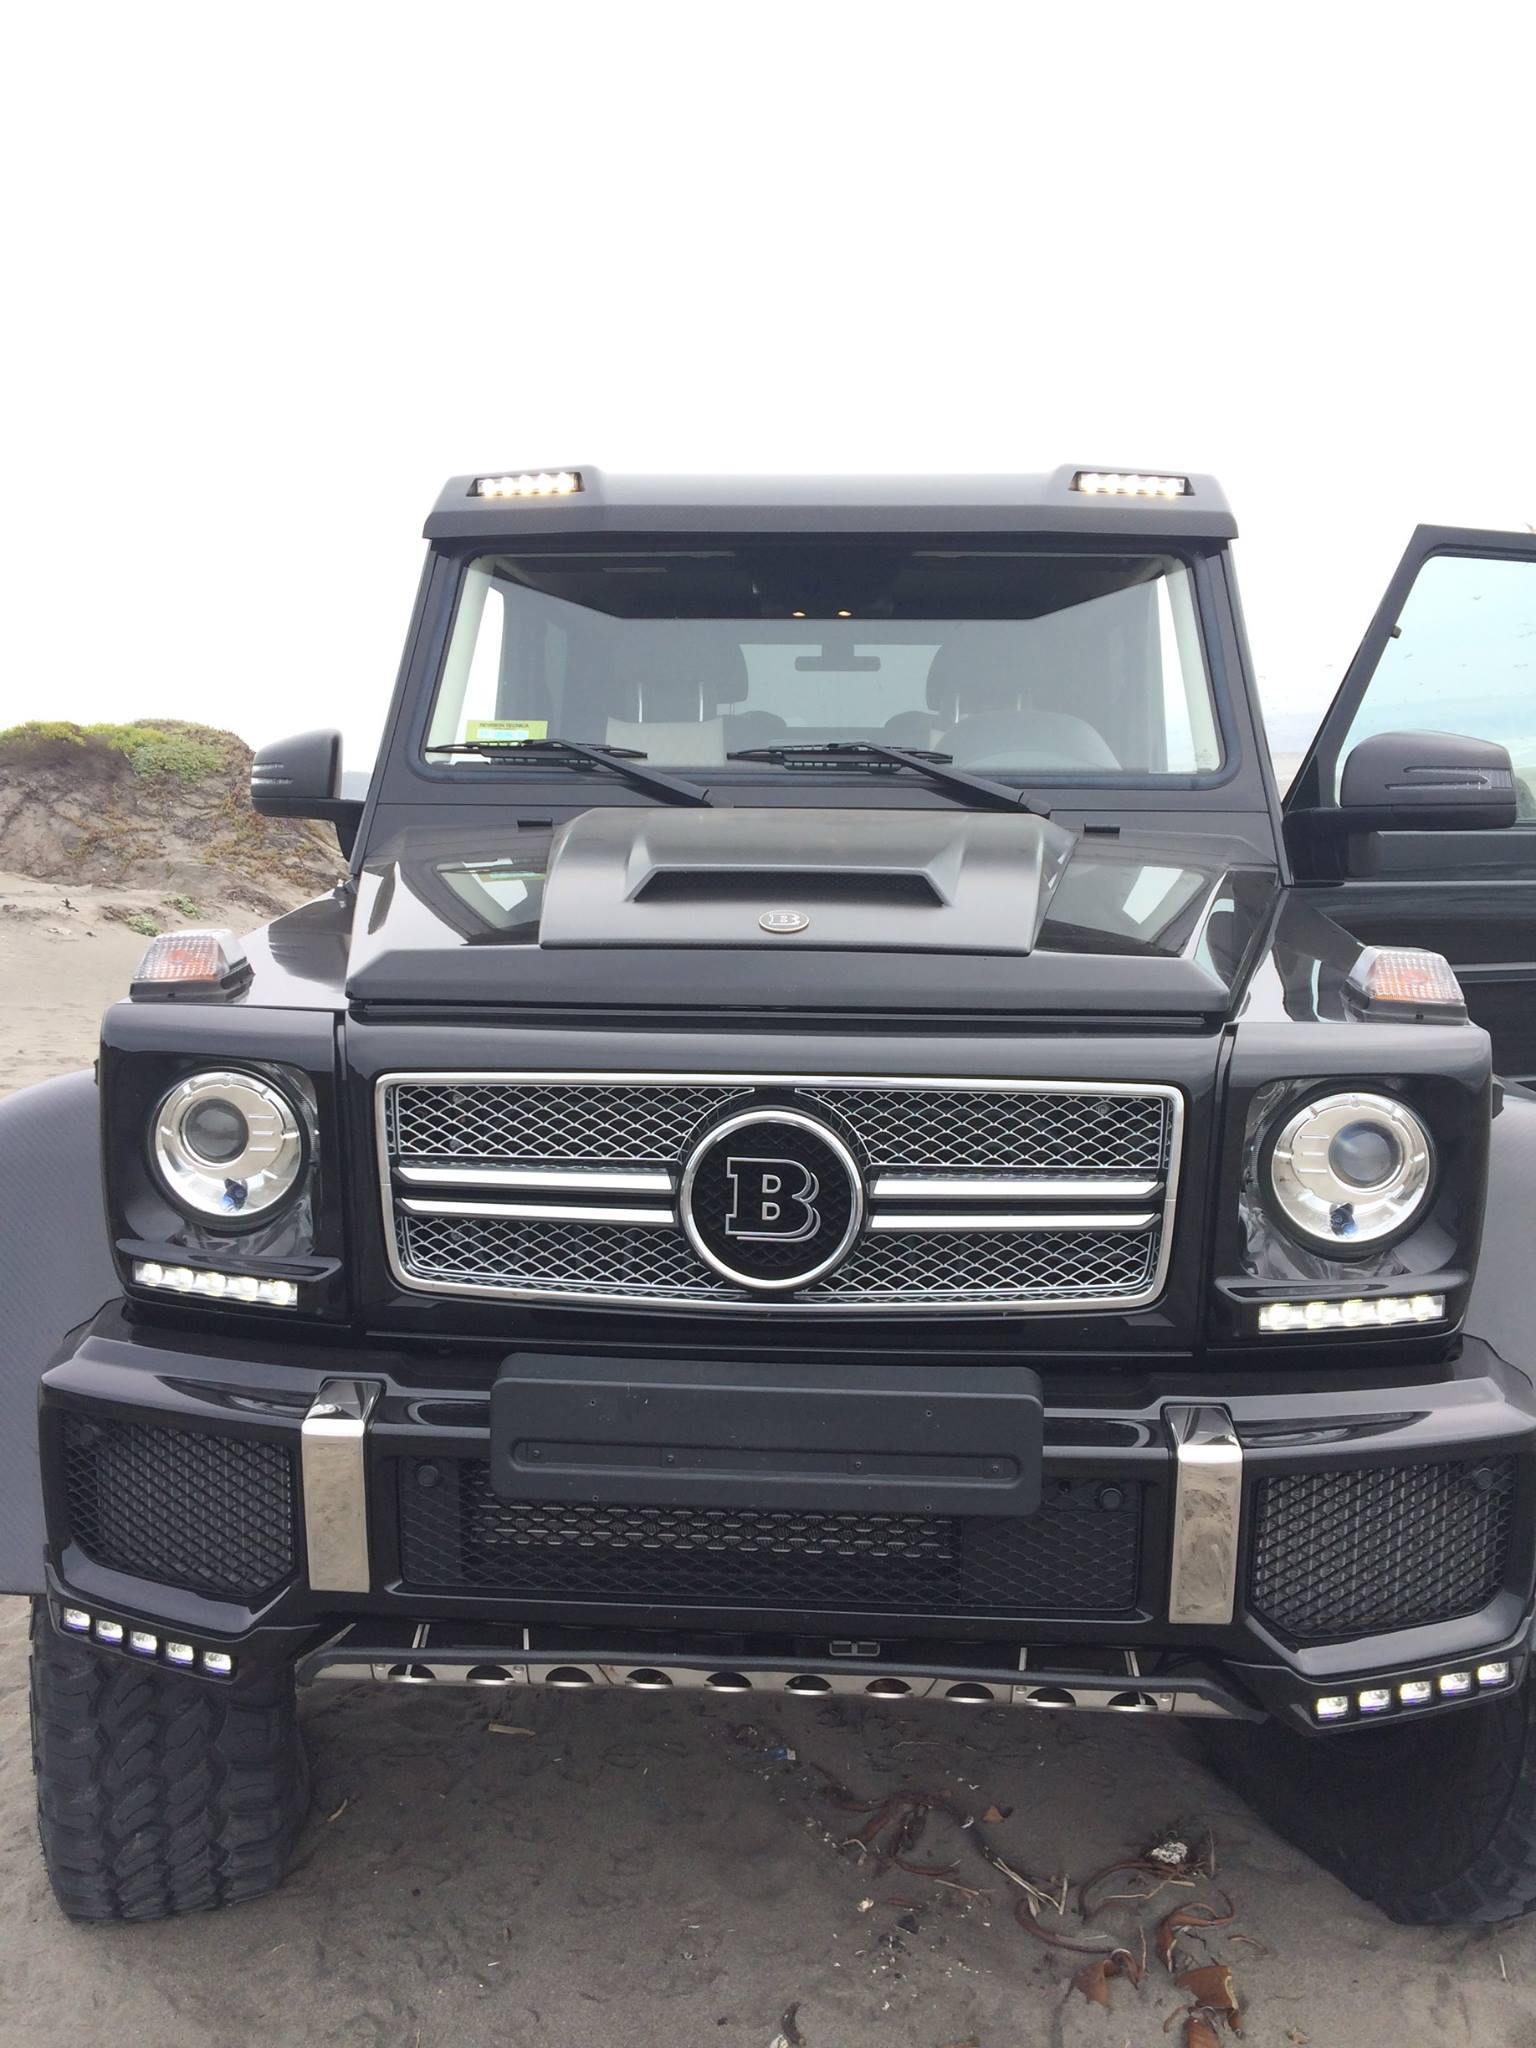 Mercedes Glc Coupe Tuning >> Brabus G63 AMG 6x6 Surfs Sand Dunes in Chile – Photo Gallery - autoevolution